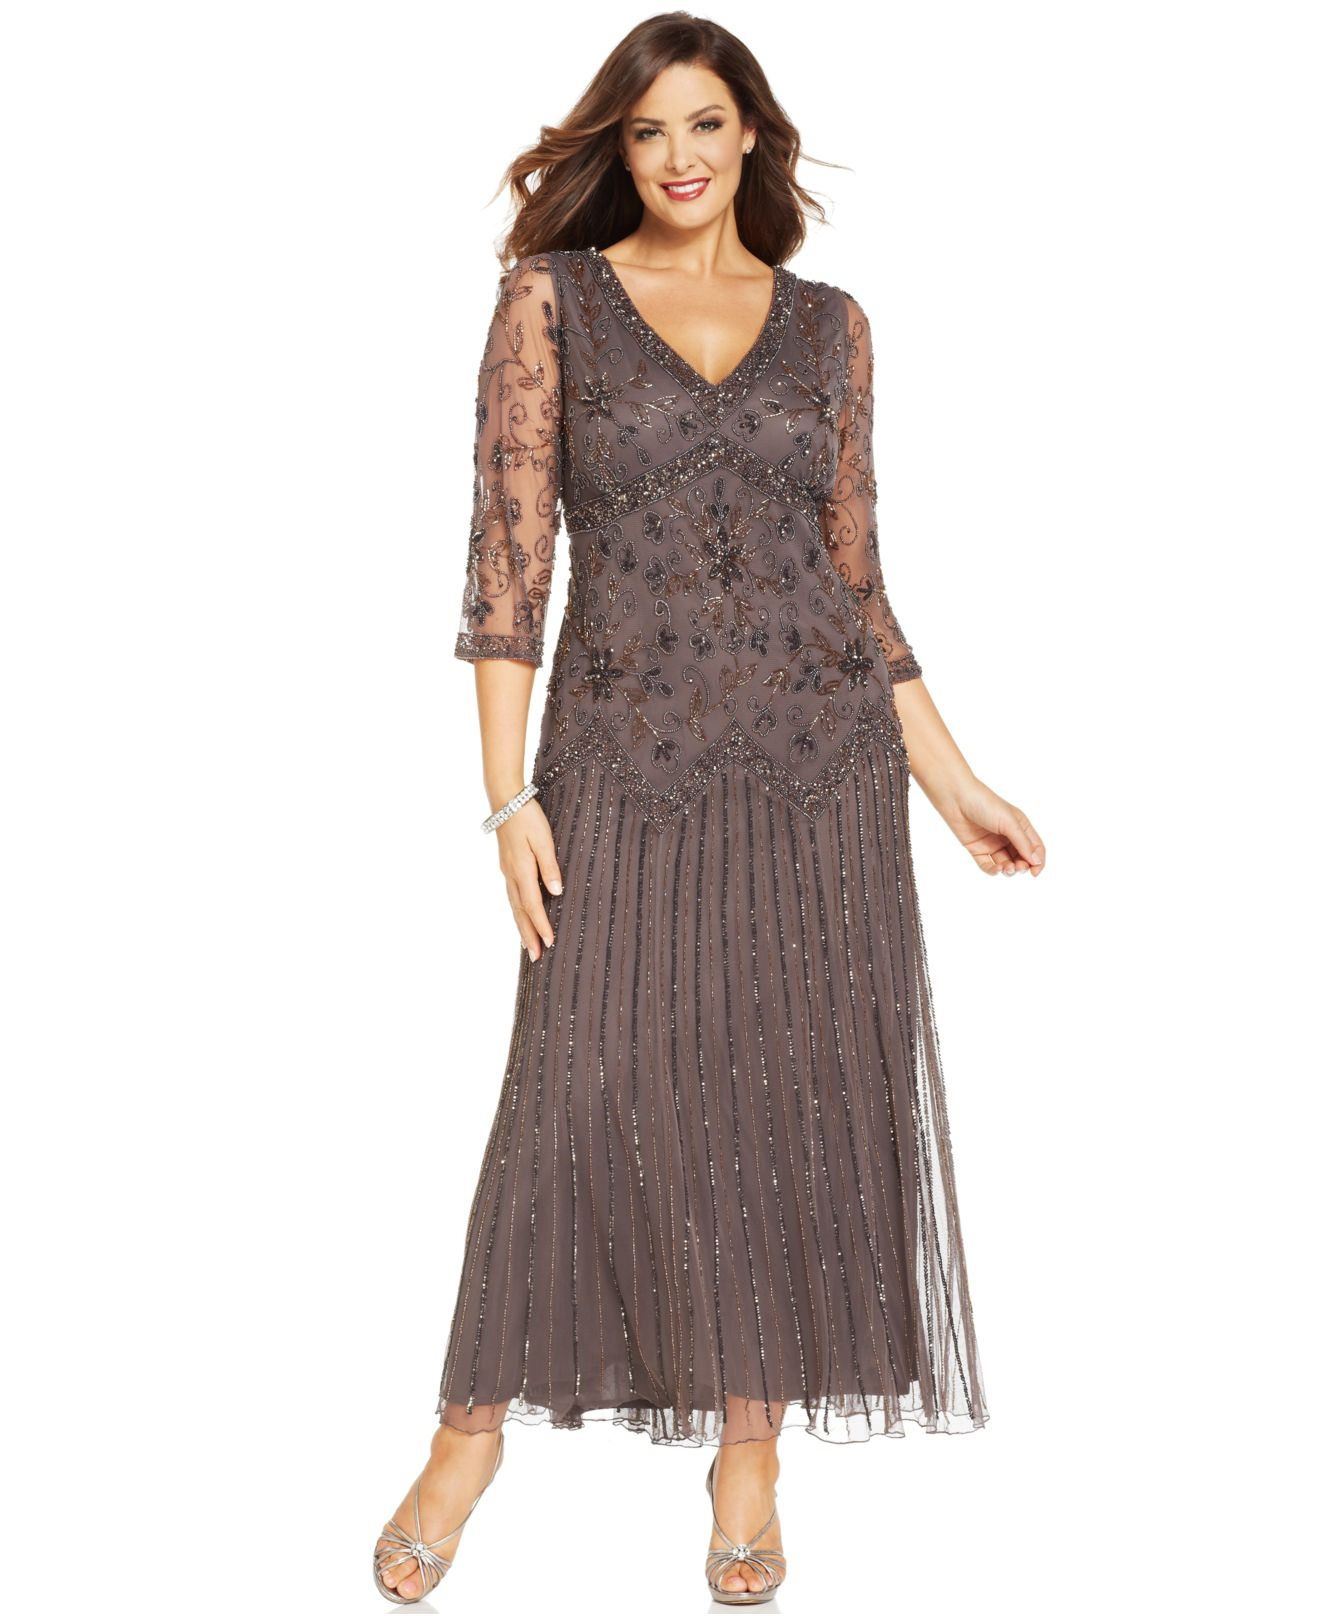 Lyst - Pisarro Nights Plus Size Three-Quarter-Sleeve Beaded Gown in Gray